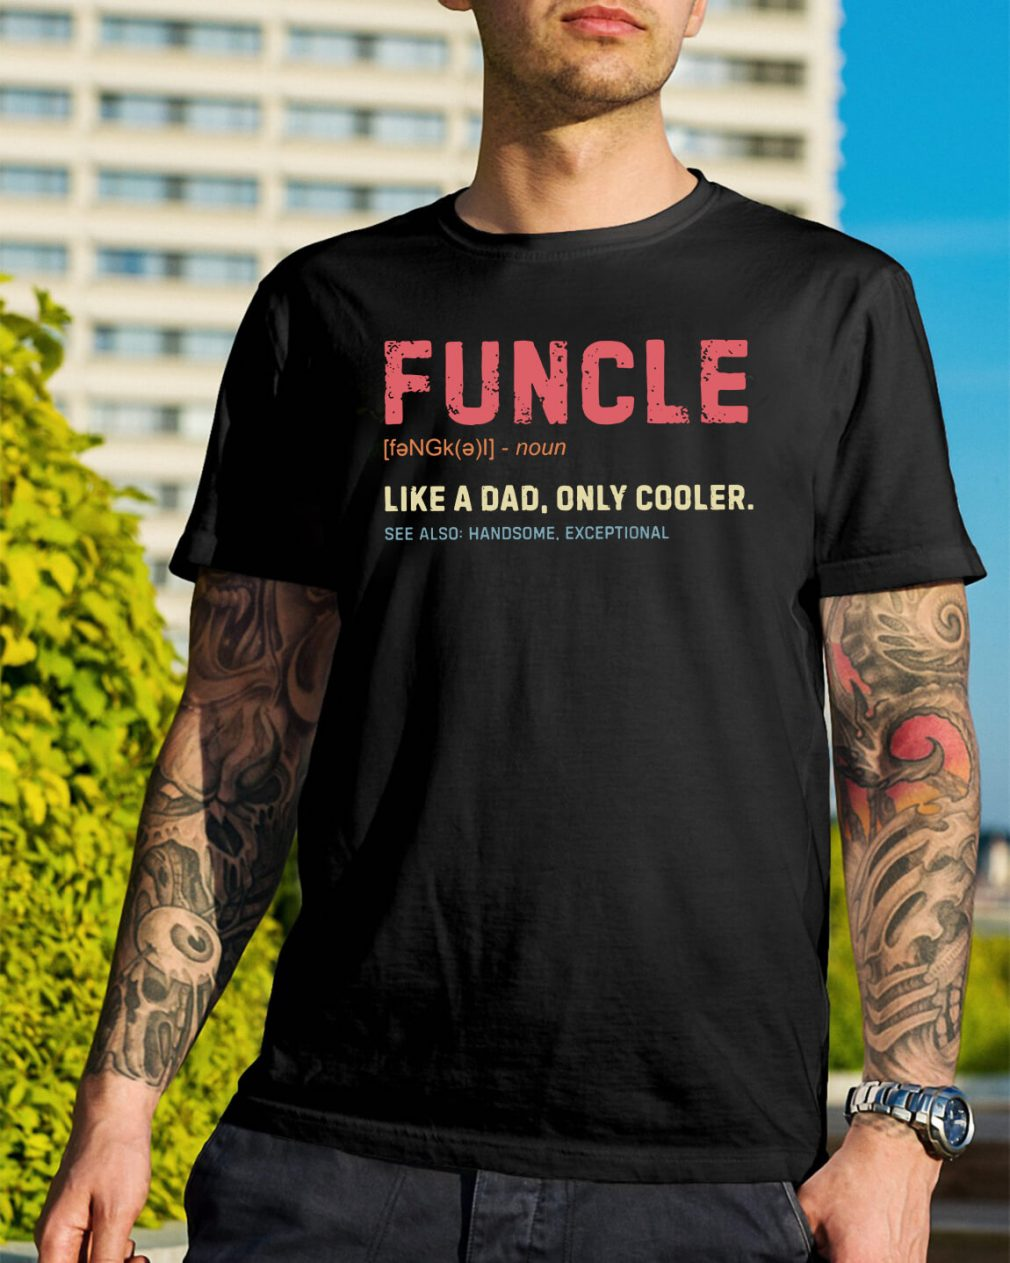 Funcle definition like a dad only cooler shirt